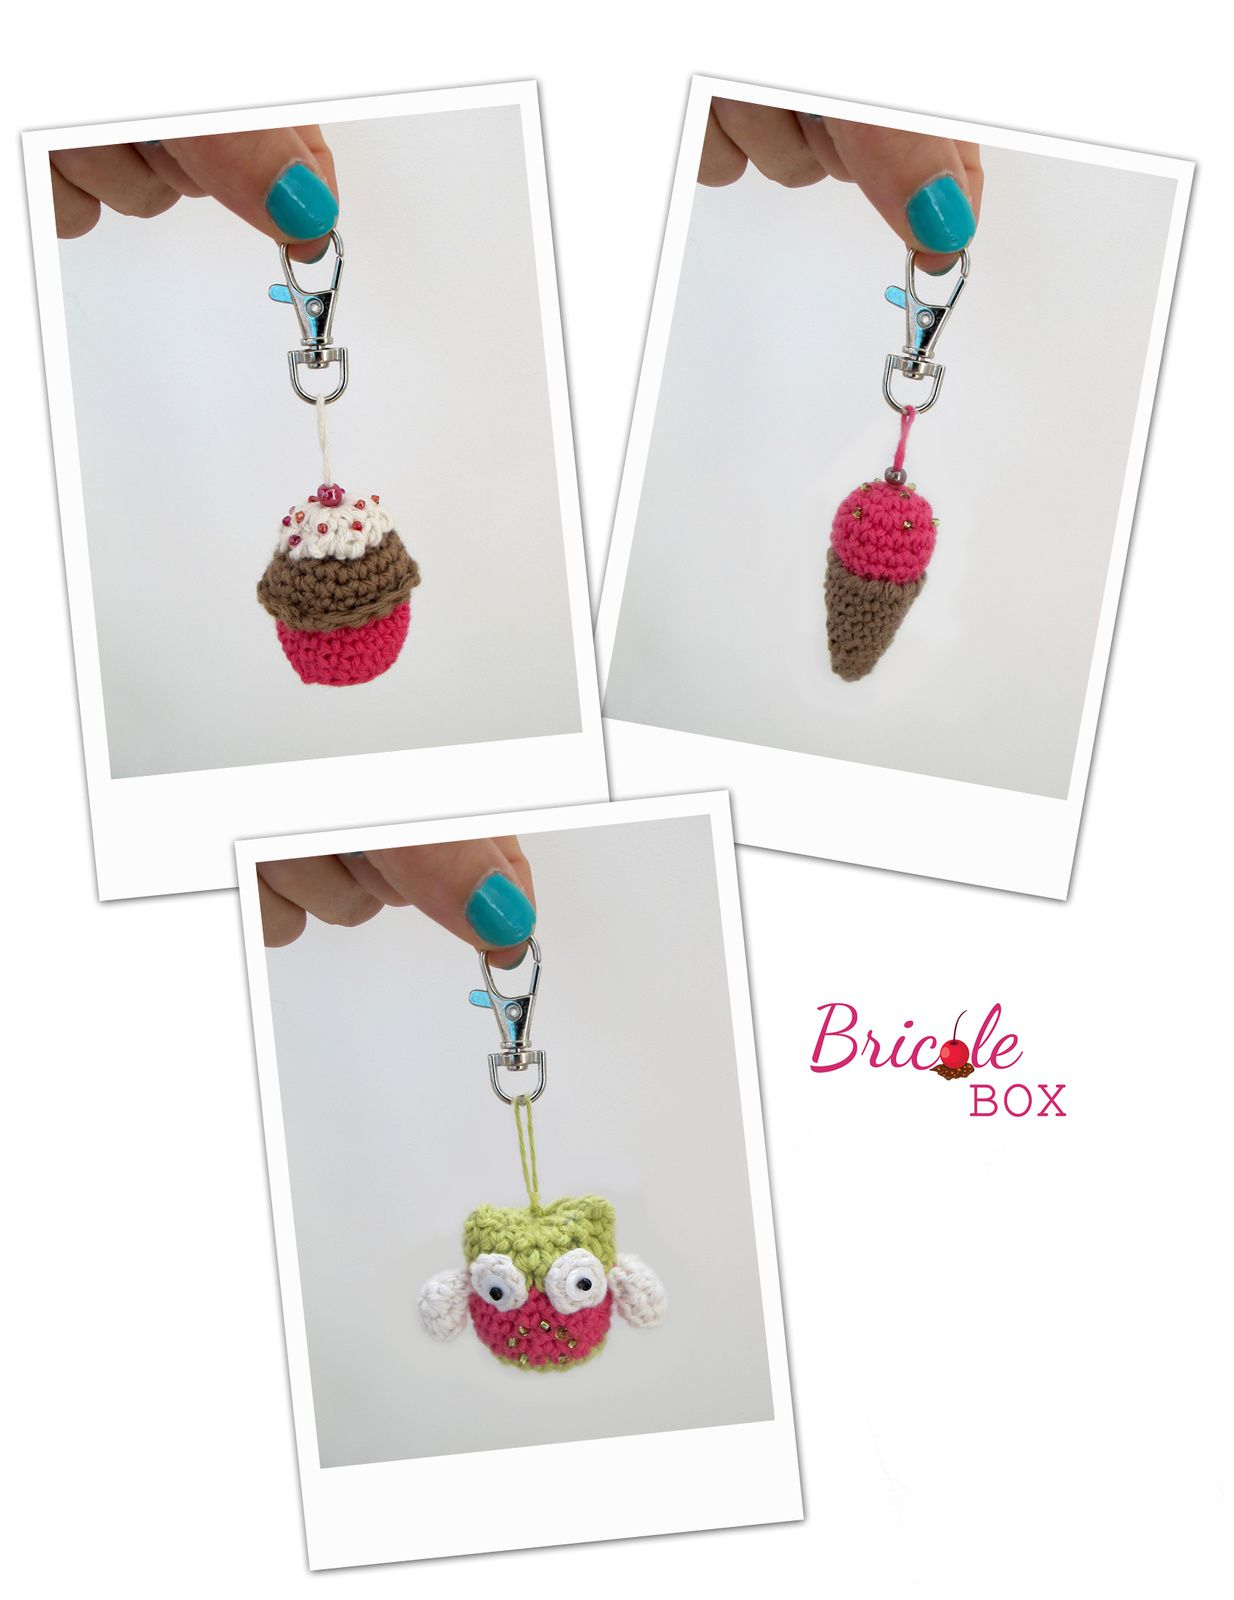 Créa # 4 Bricole Box &quot&#x3B;The One&quot&#x3B;: Tuto porte-clefs chez La chouette !